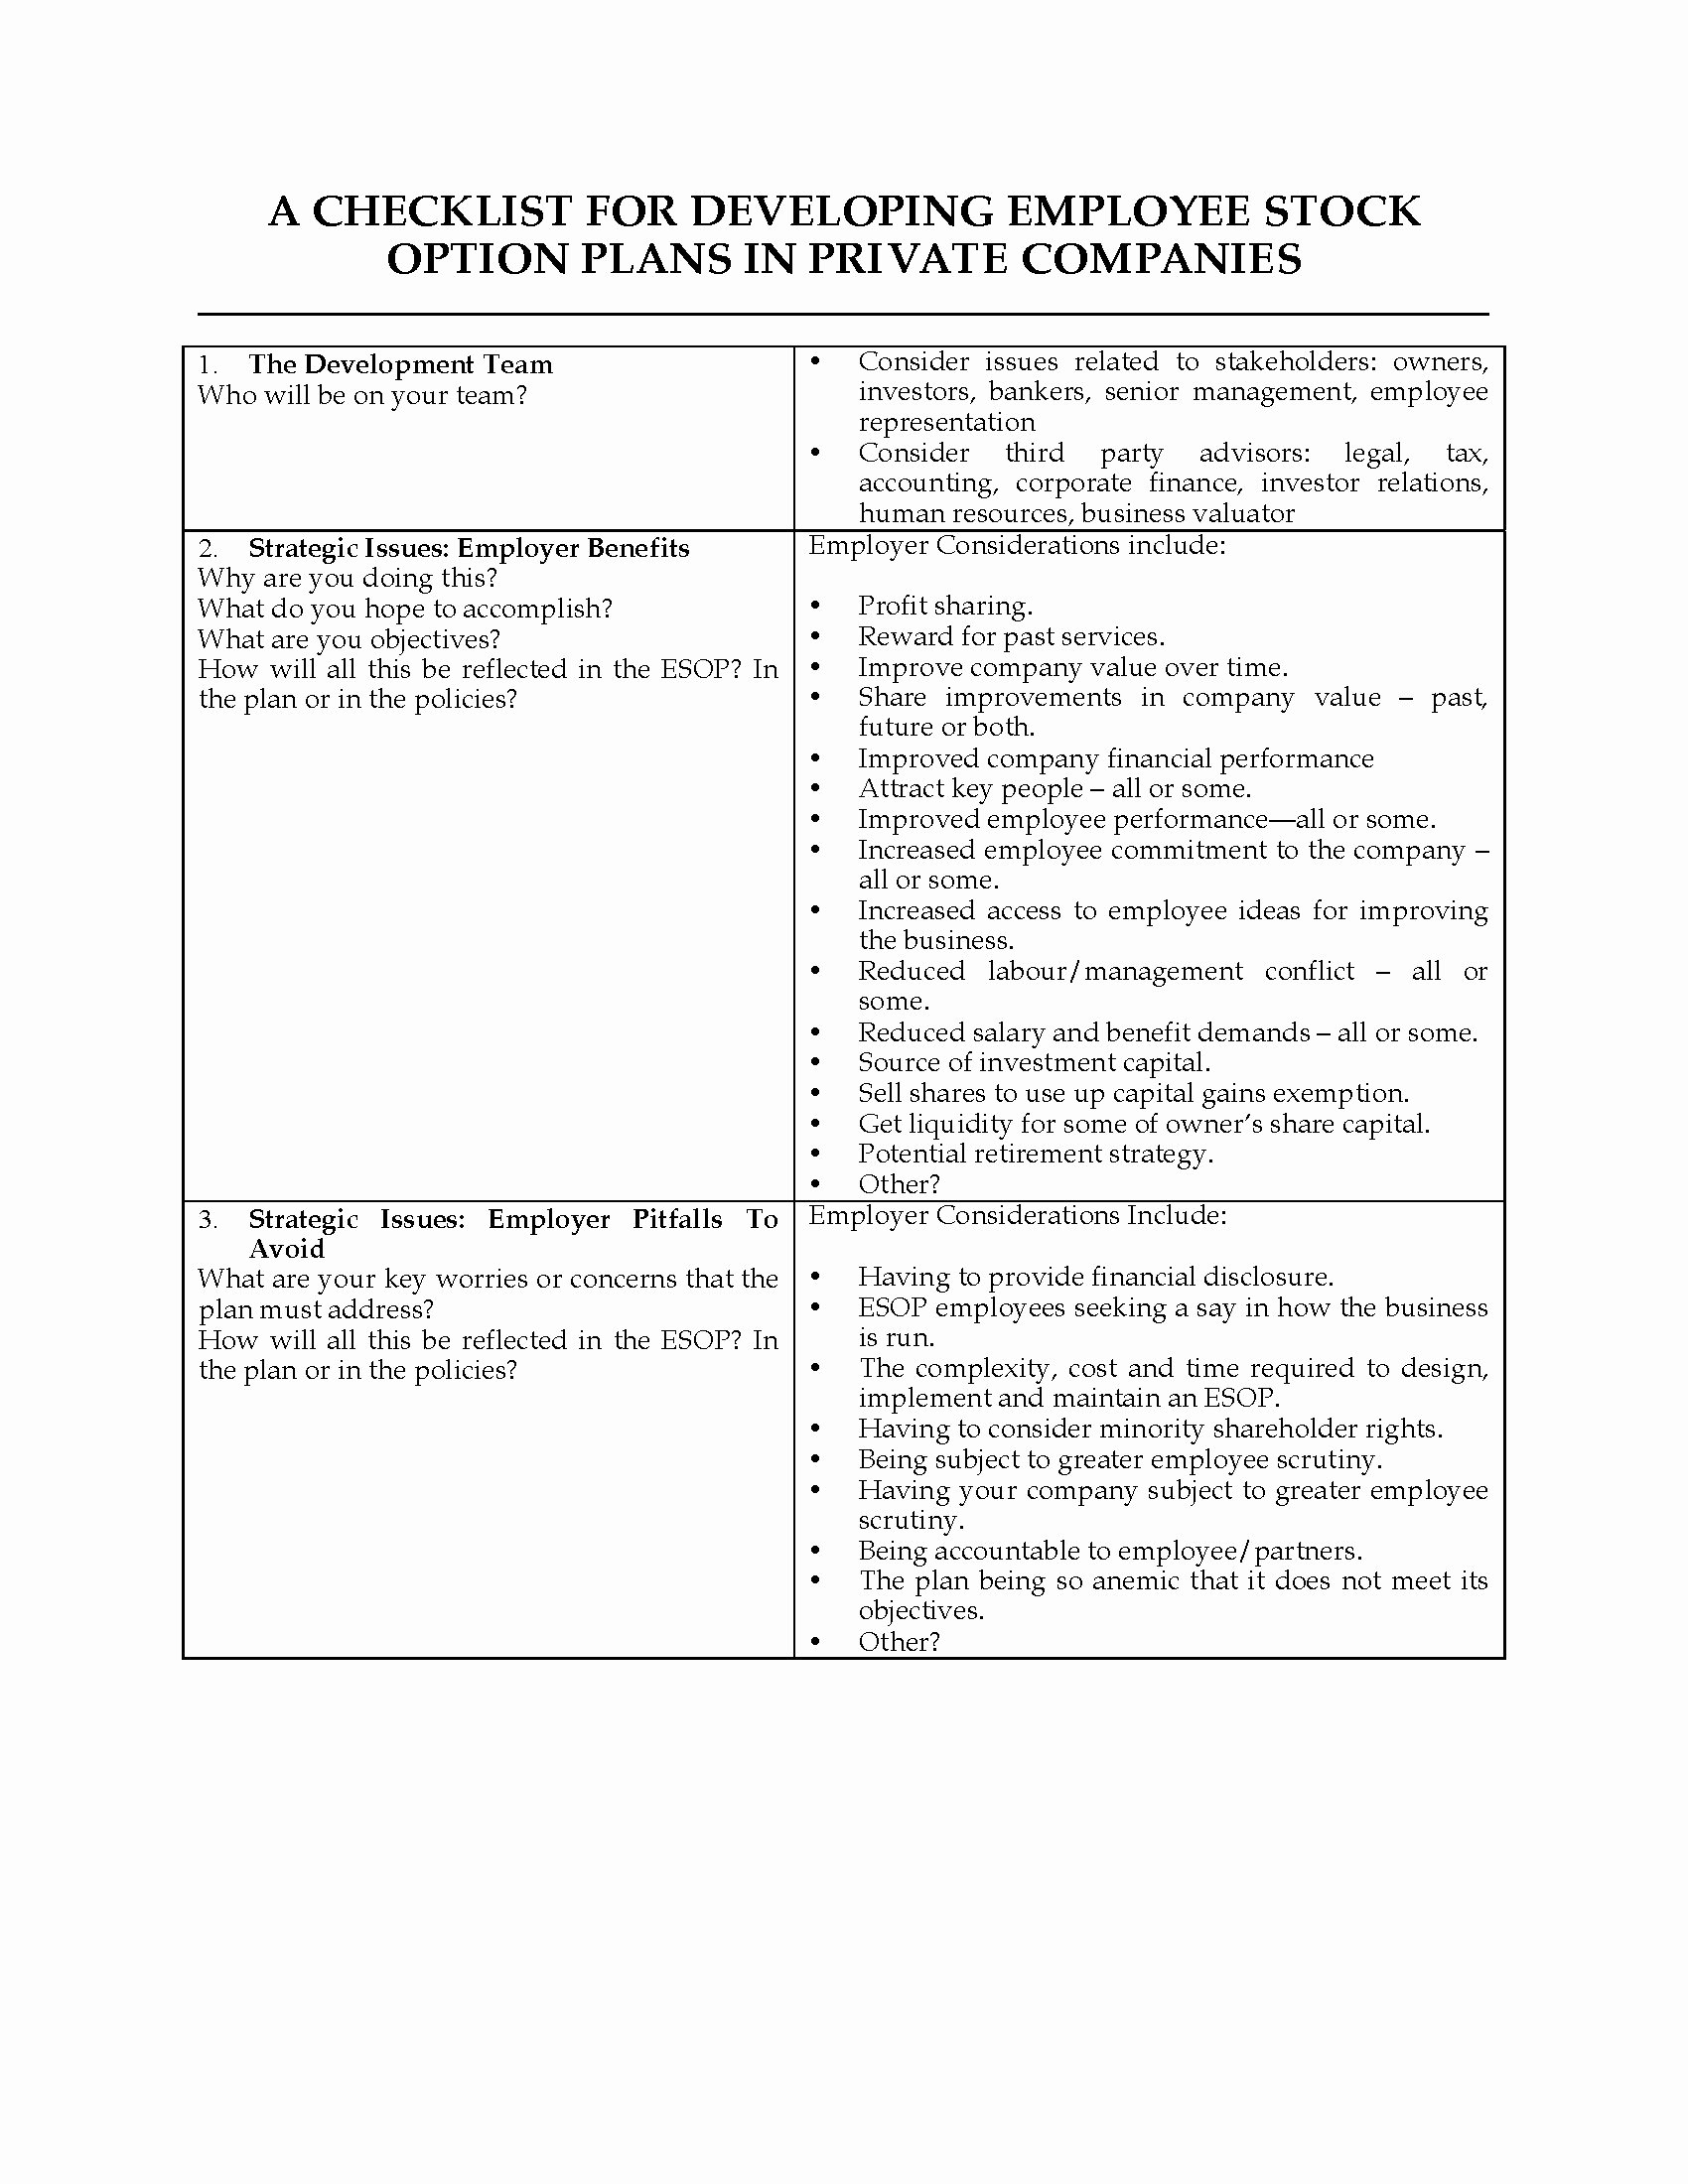 Stock Option Plan Template New Checklist for Employee Stock Option Plans